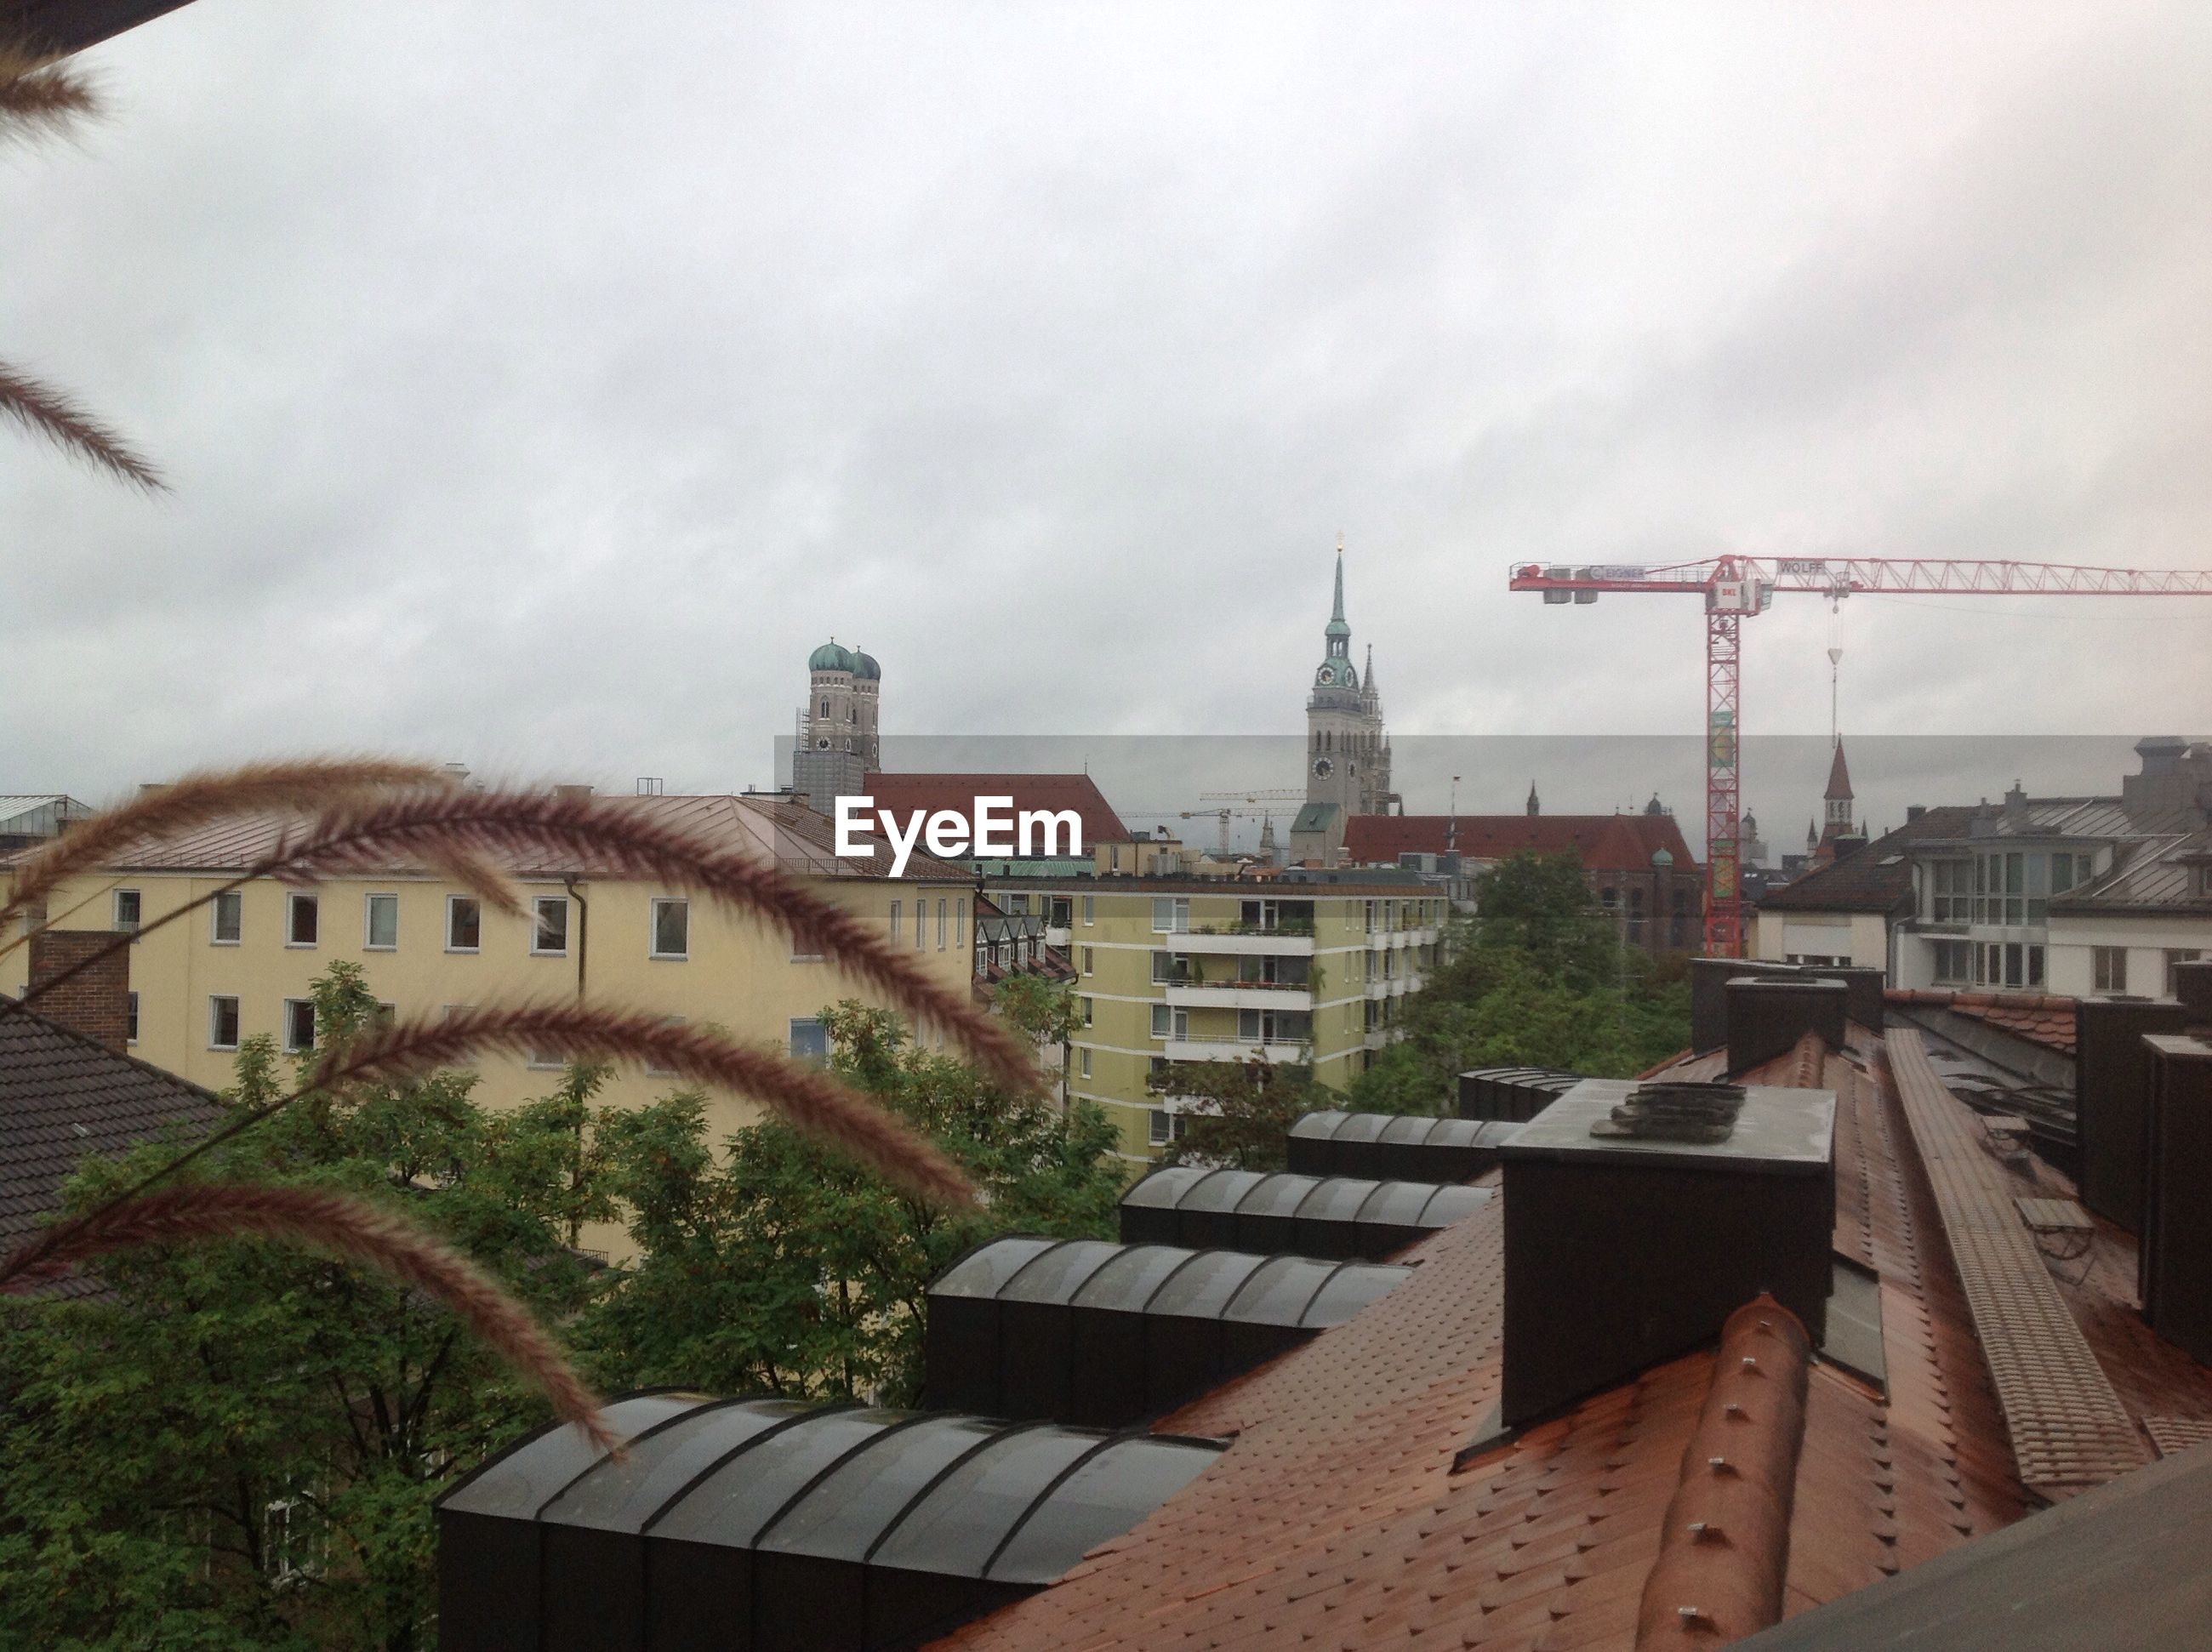 VIEW OF BUILDINGS AGAINST CLOUDY SKY